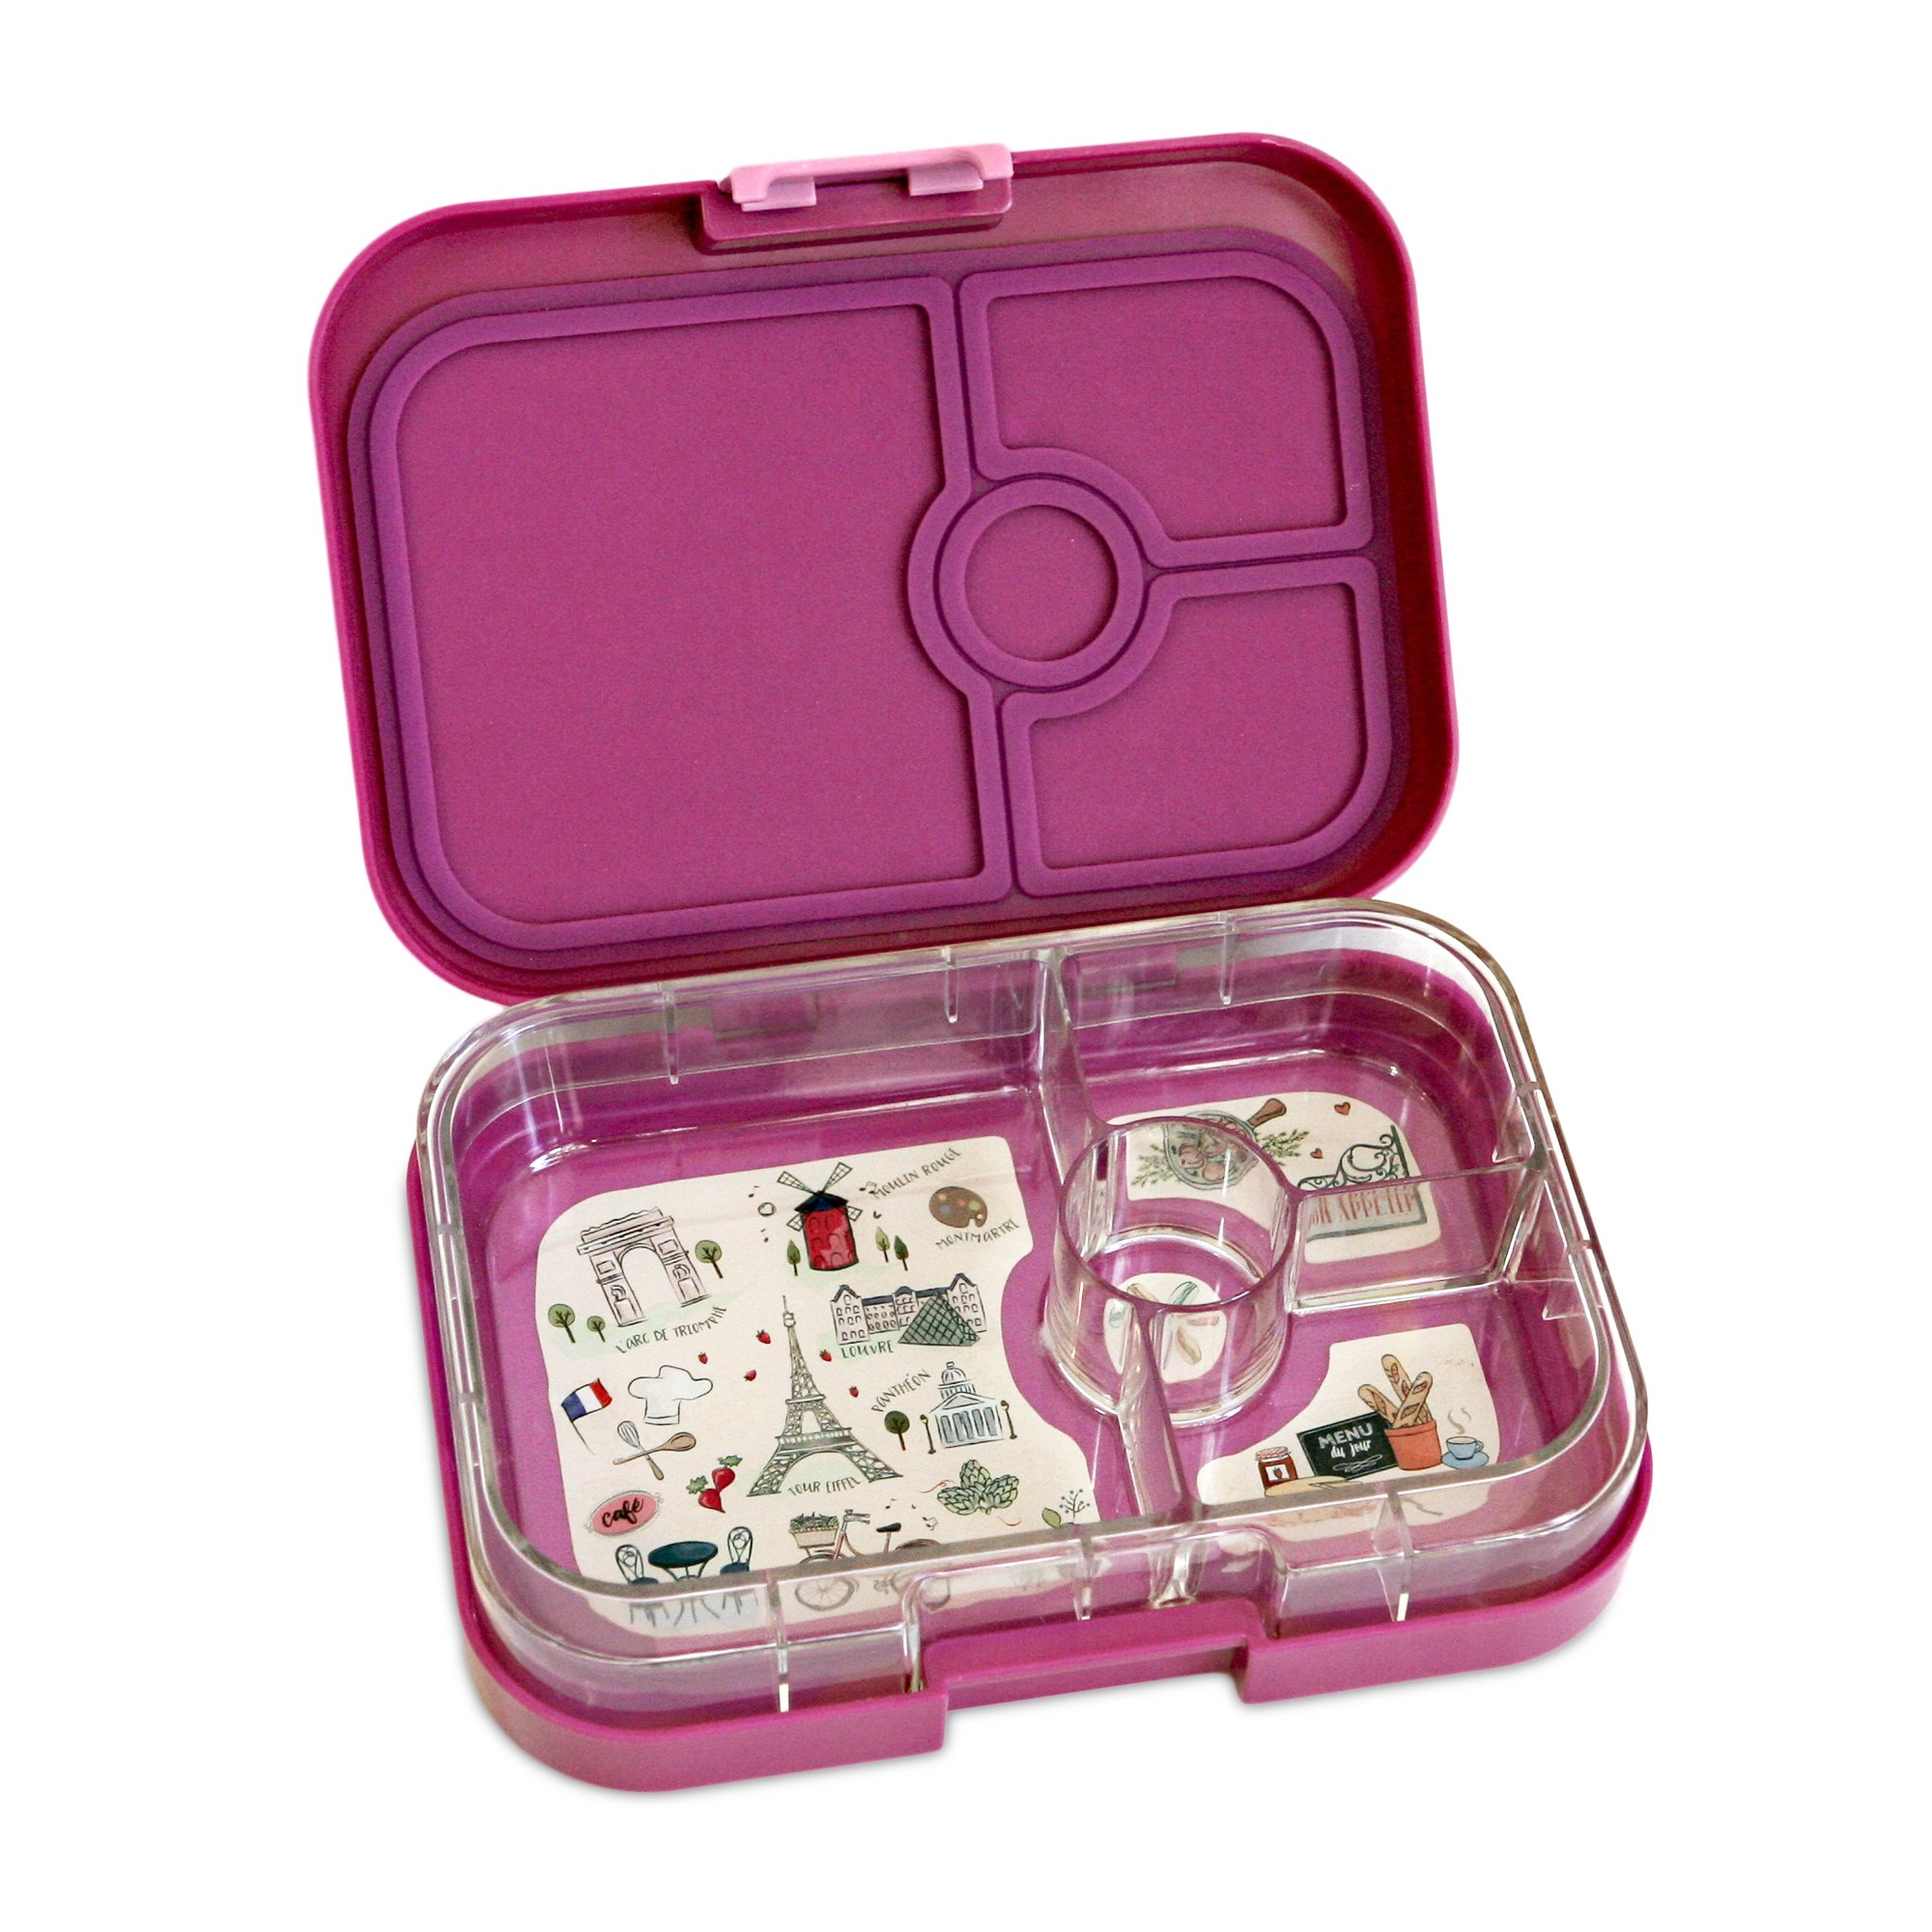 galleon yumbox leakproof bento lunch box container bijoux purple for kids and adults. Black Bedroom Furniture Sets. Home Design Ideas